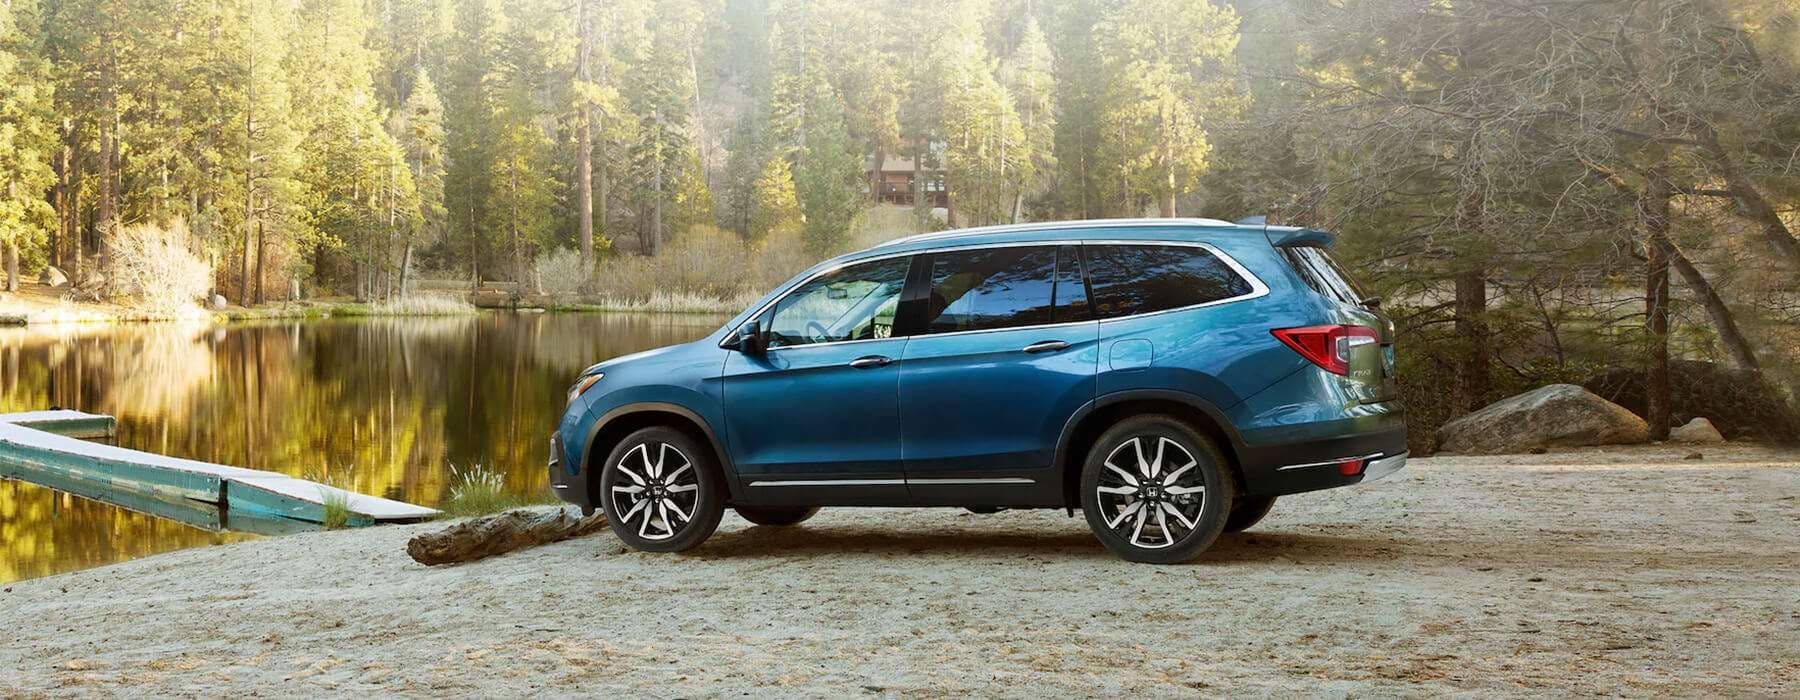 2021 Honda Pilot Trim Level Slider